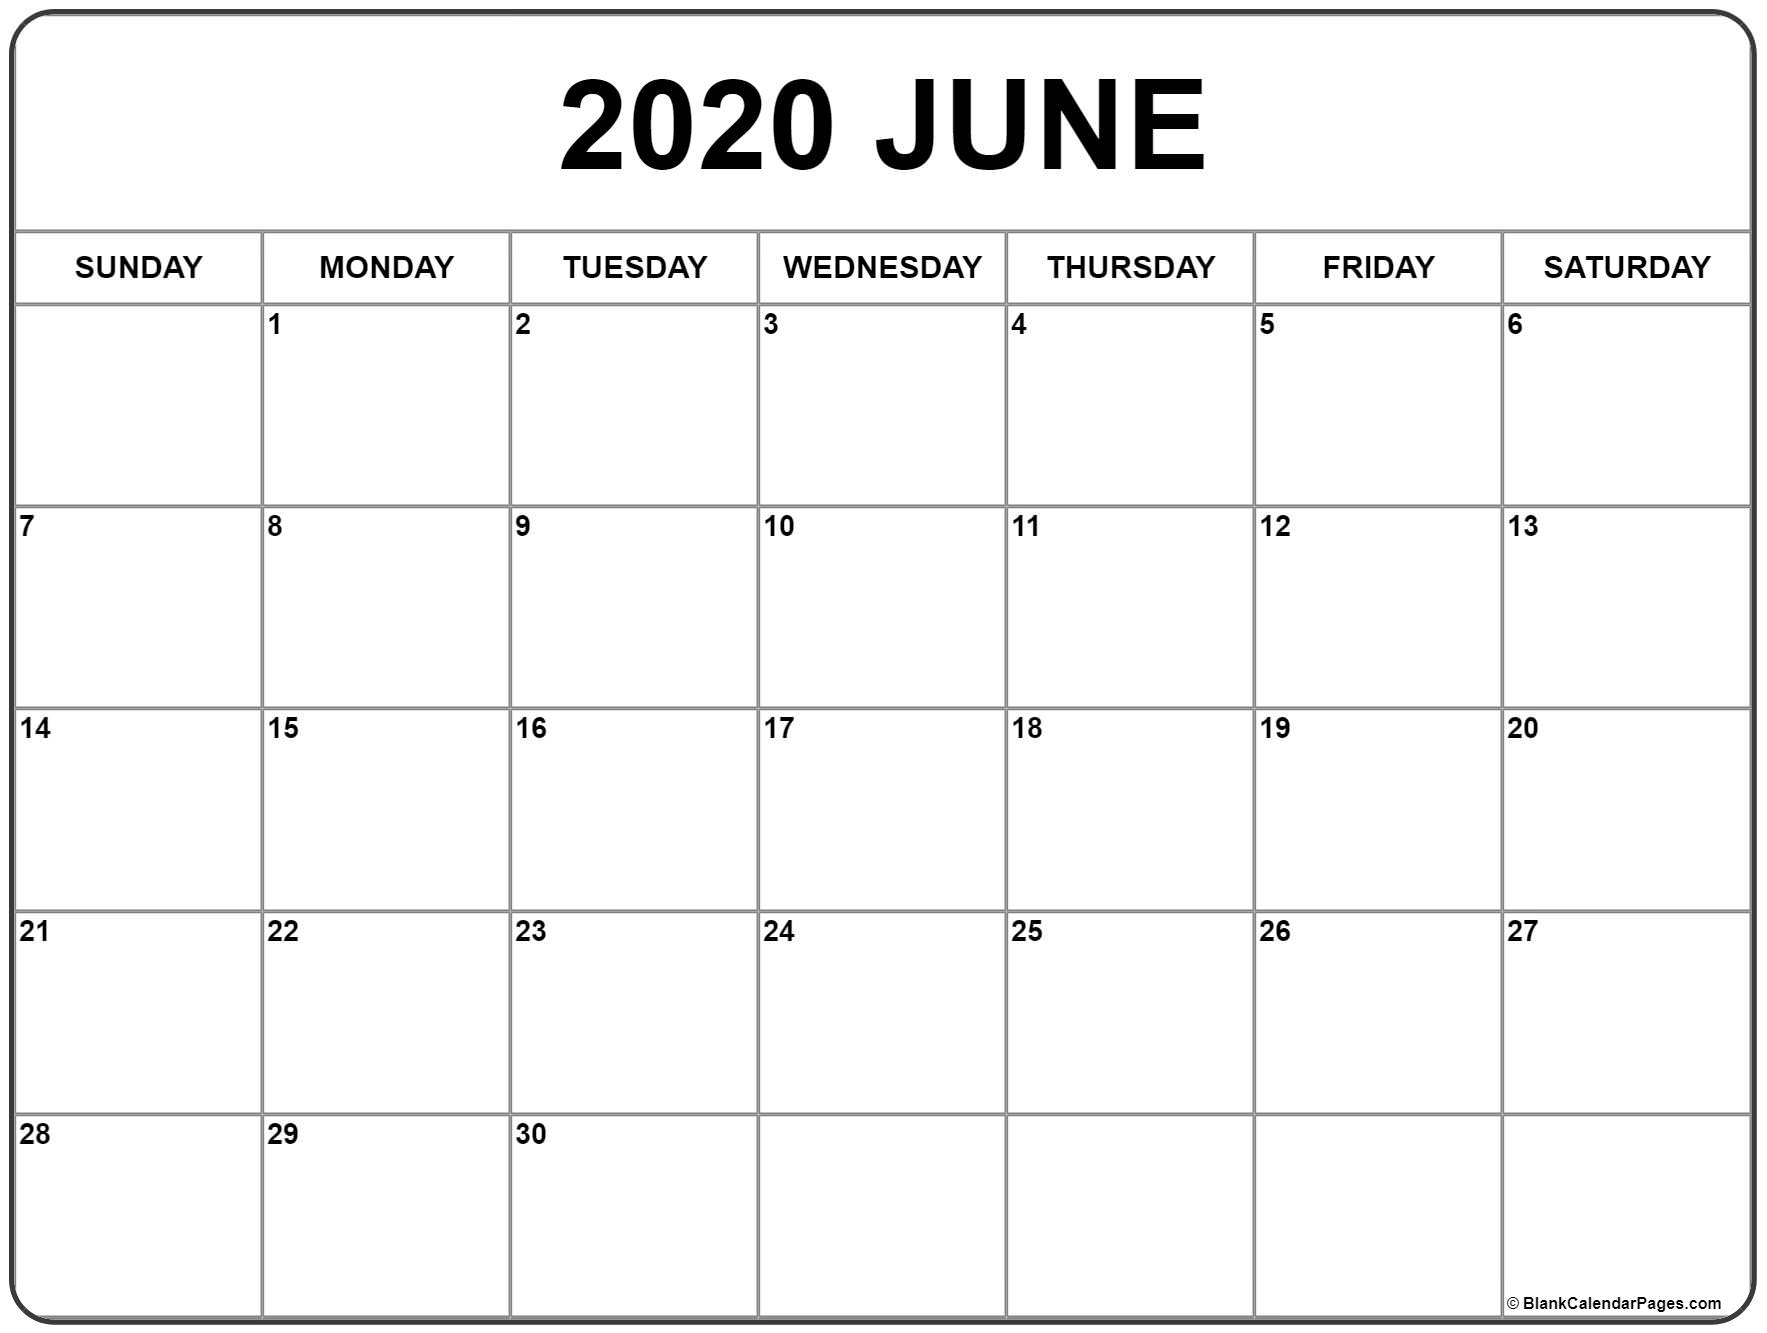 June 2020 Calendar | Free Printable Monthly Calendars regarding Calendar With Lots Of Space To Write 2020